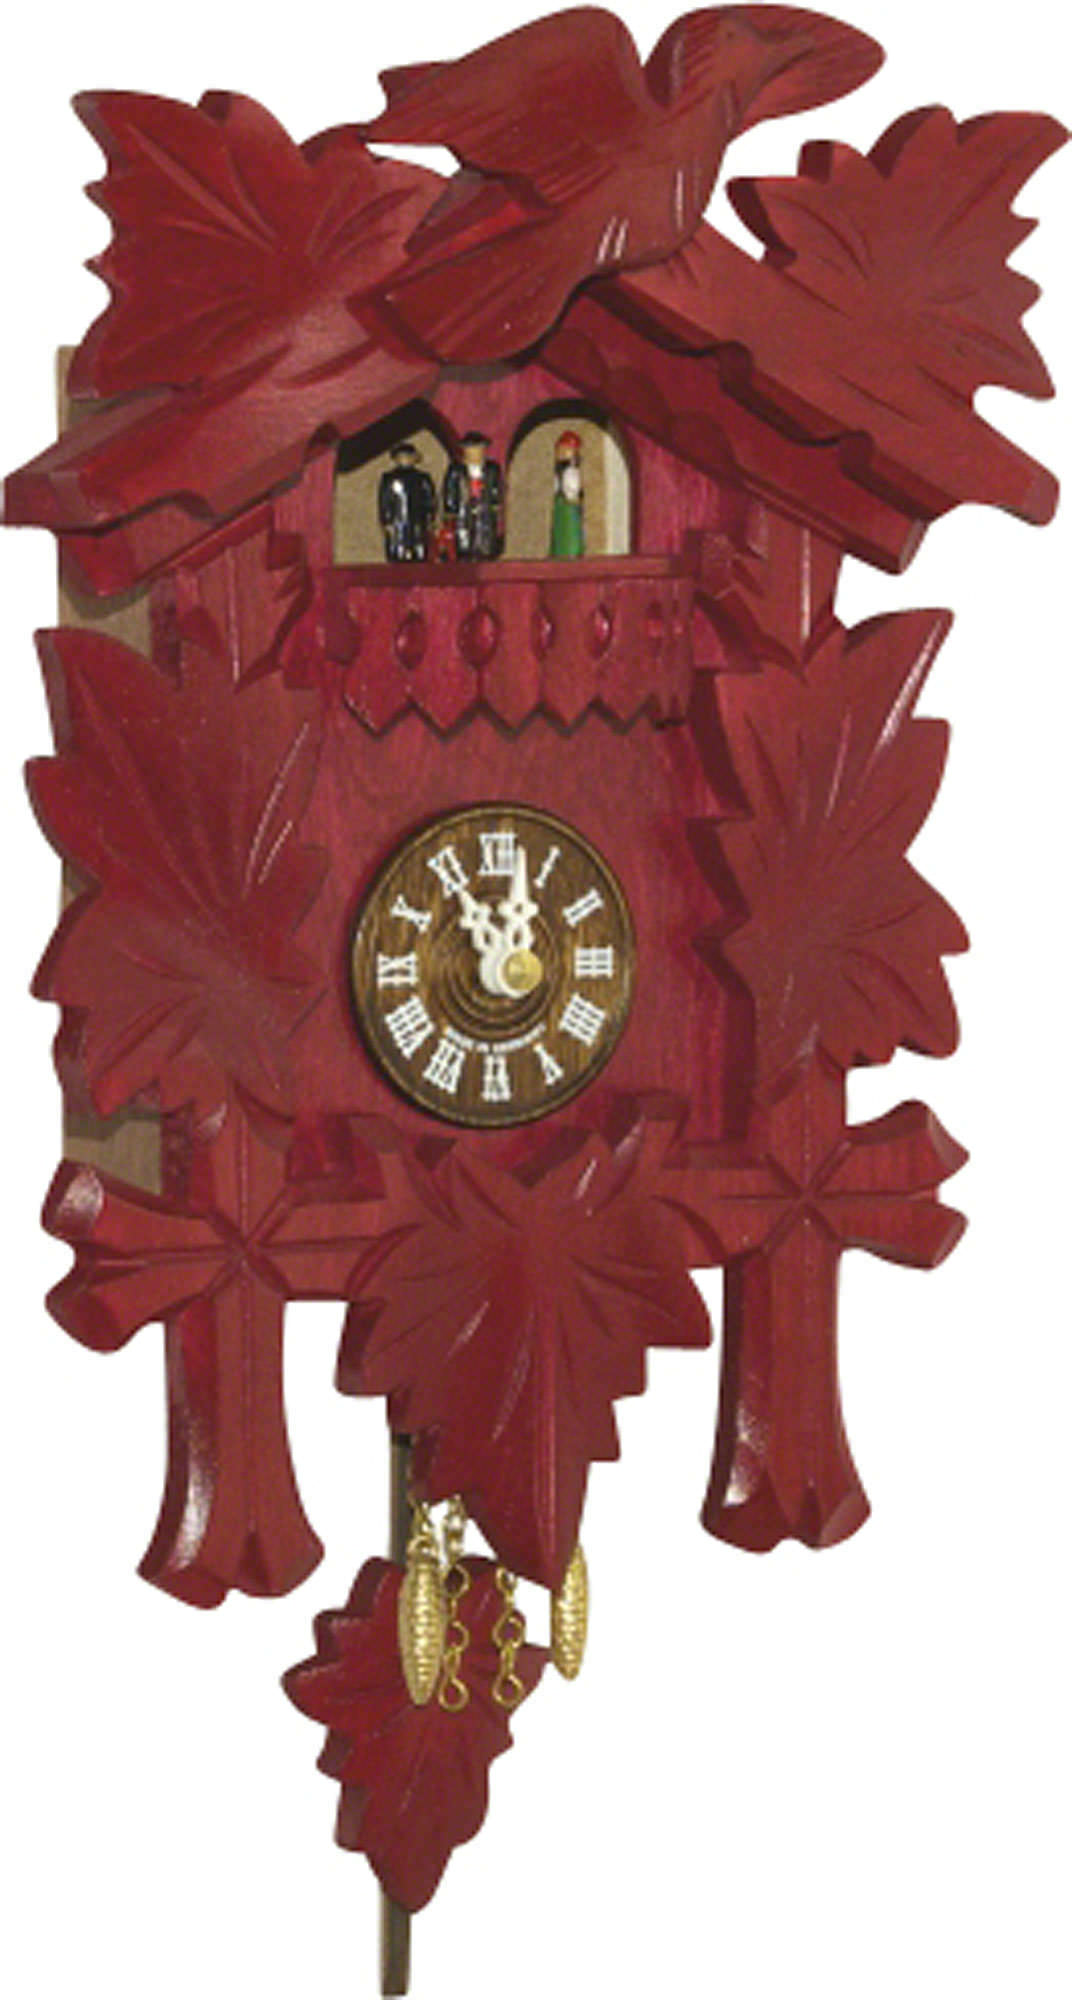 Cuckoo clock quartz movement black forest pendulum clock style 24cm by trenkle uhren 2018 pq rot - Cuckoo clock pendulum ...